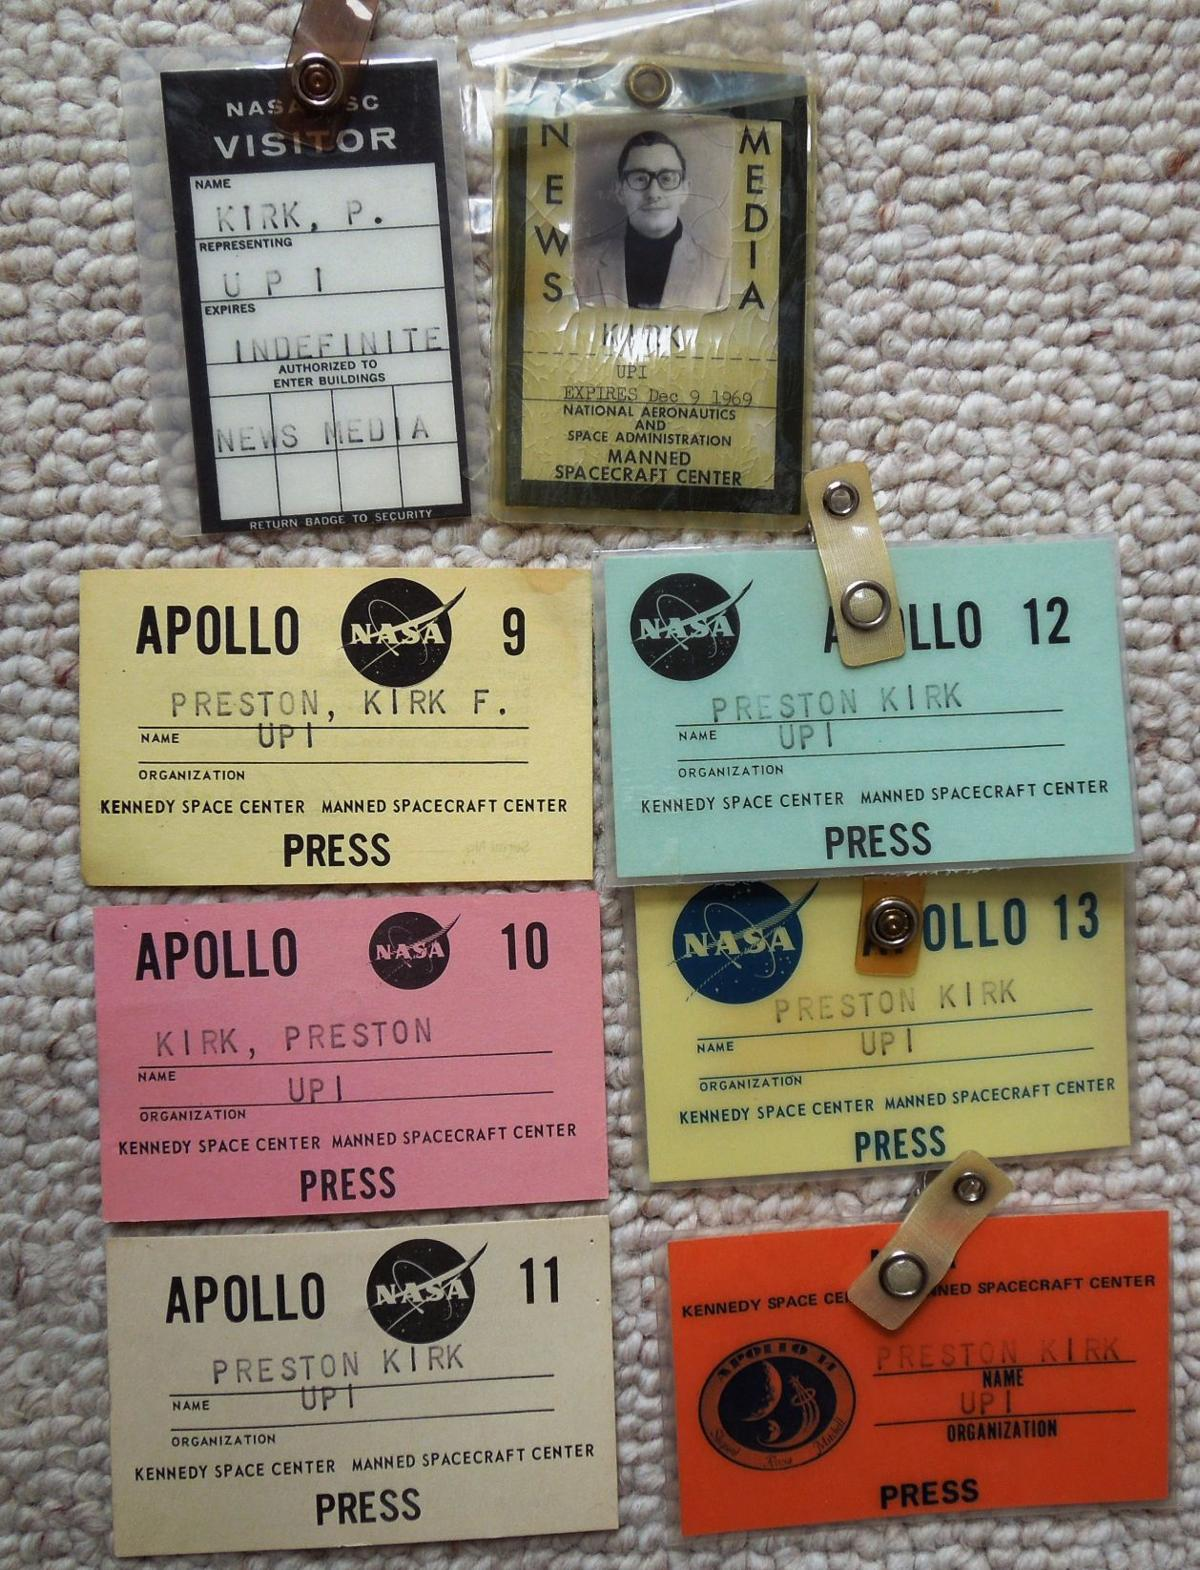 Preston Kirk Apollo mission IDs